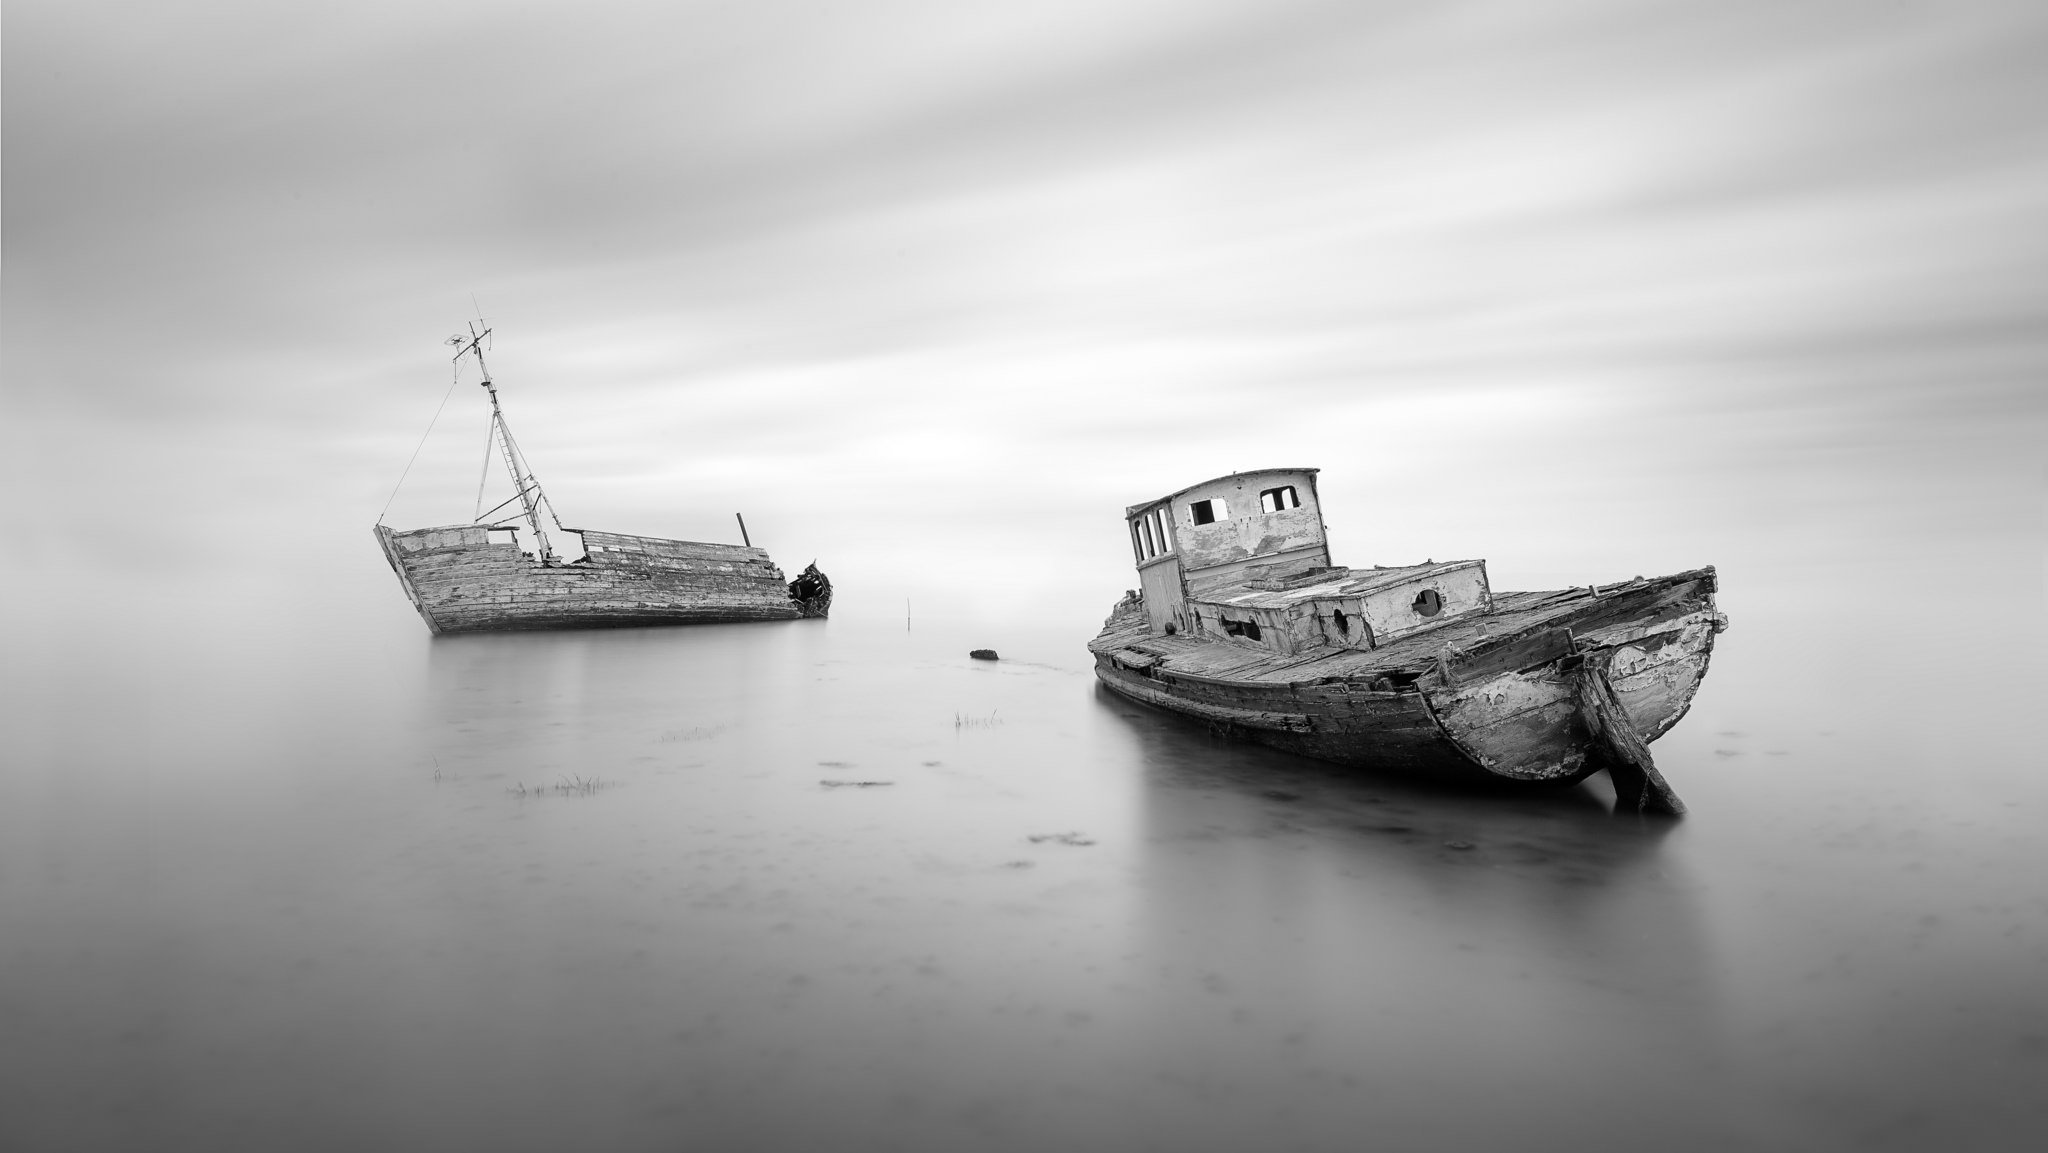 Right then. First on the shortlist this week is @DWPhotography76 with these two old boys from Suffolk #WexMondays https://t.co/jUElfTIyea